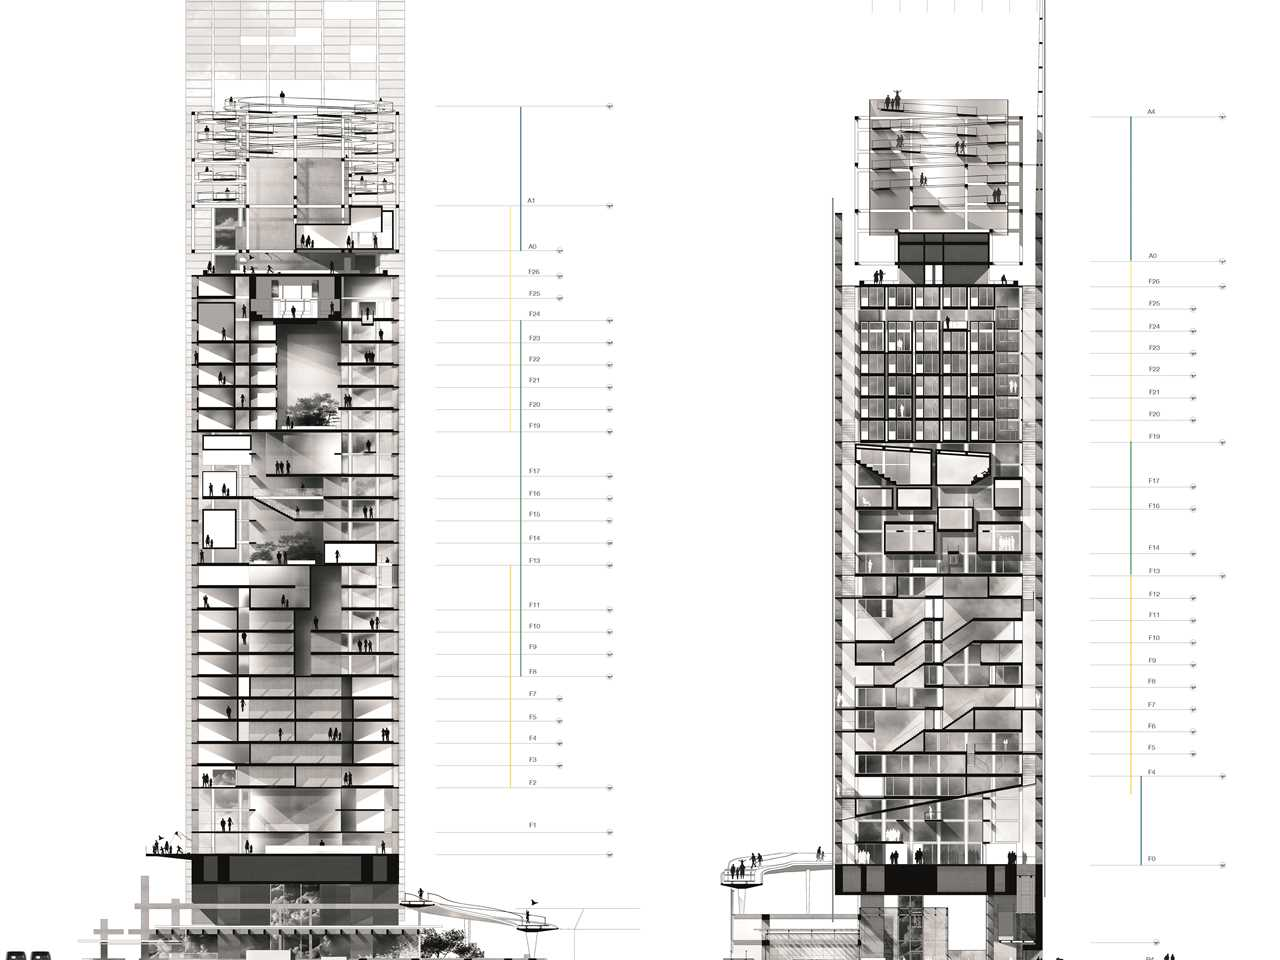 Project entry 2014 Europe – Vertical Restructuring: High-rise tower rehabilitation, Nantes, France